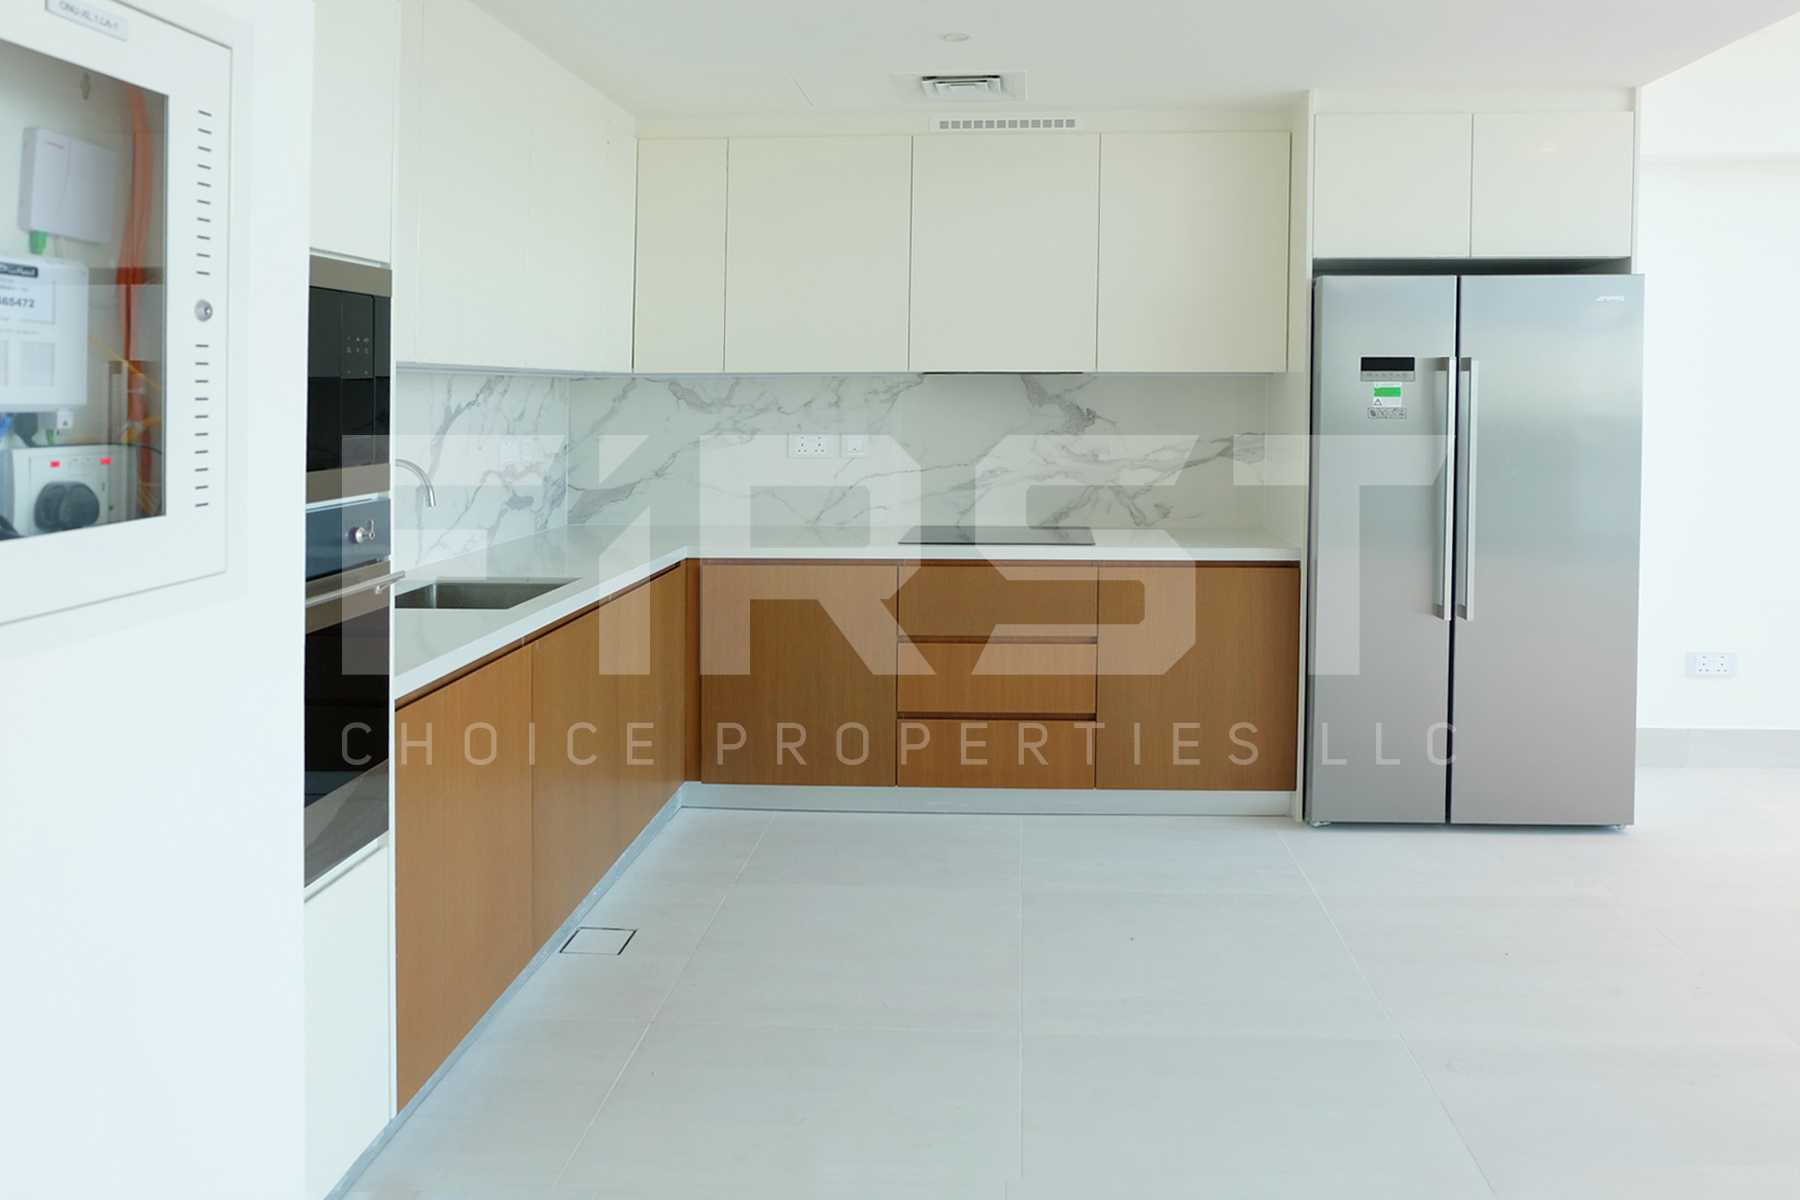 Internal Photo of 1 Bedroom Loft Apartment in Mamsha Al Saadiyat Island Abu Dhabi UAE (19).jpg